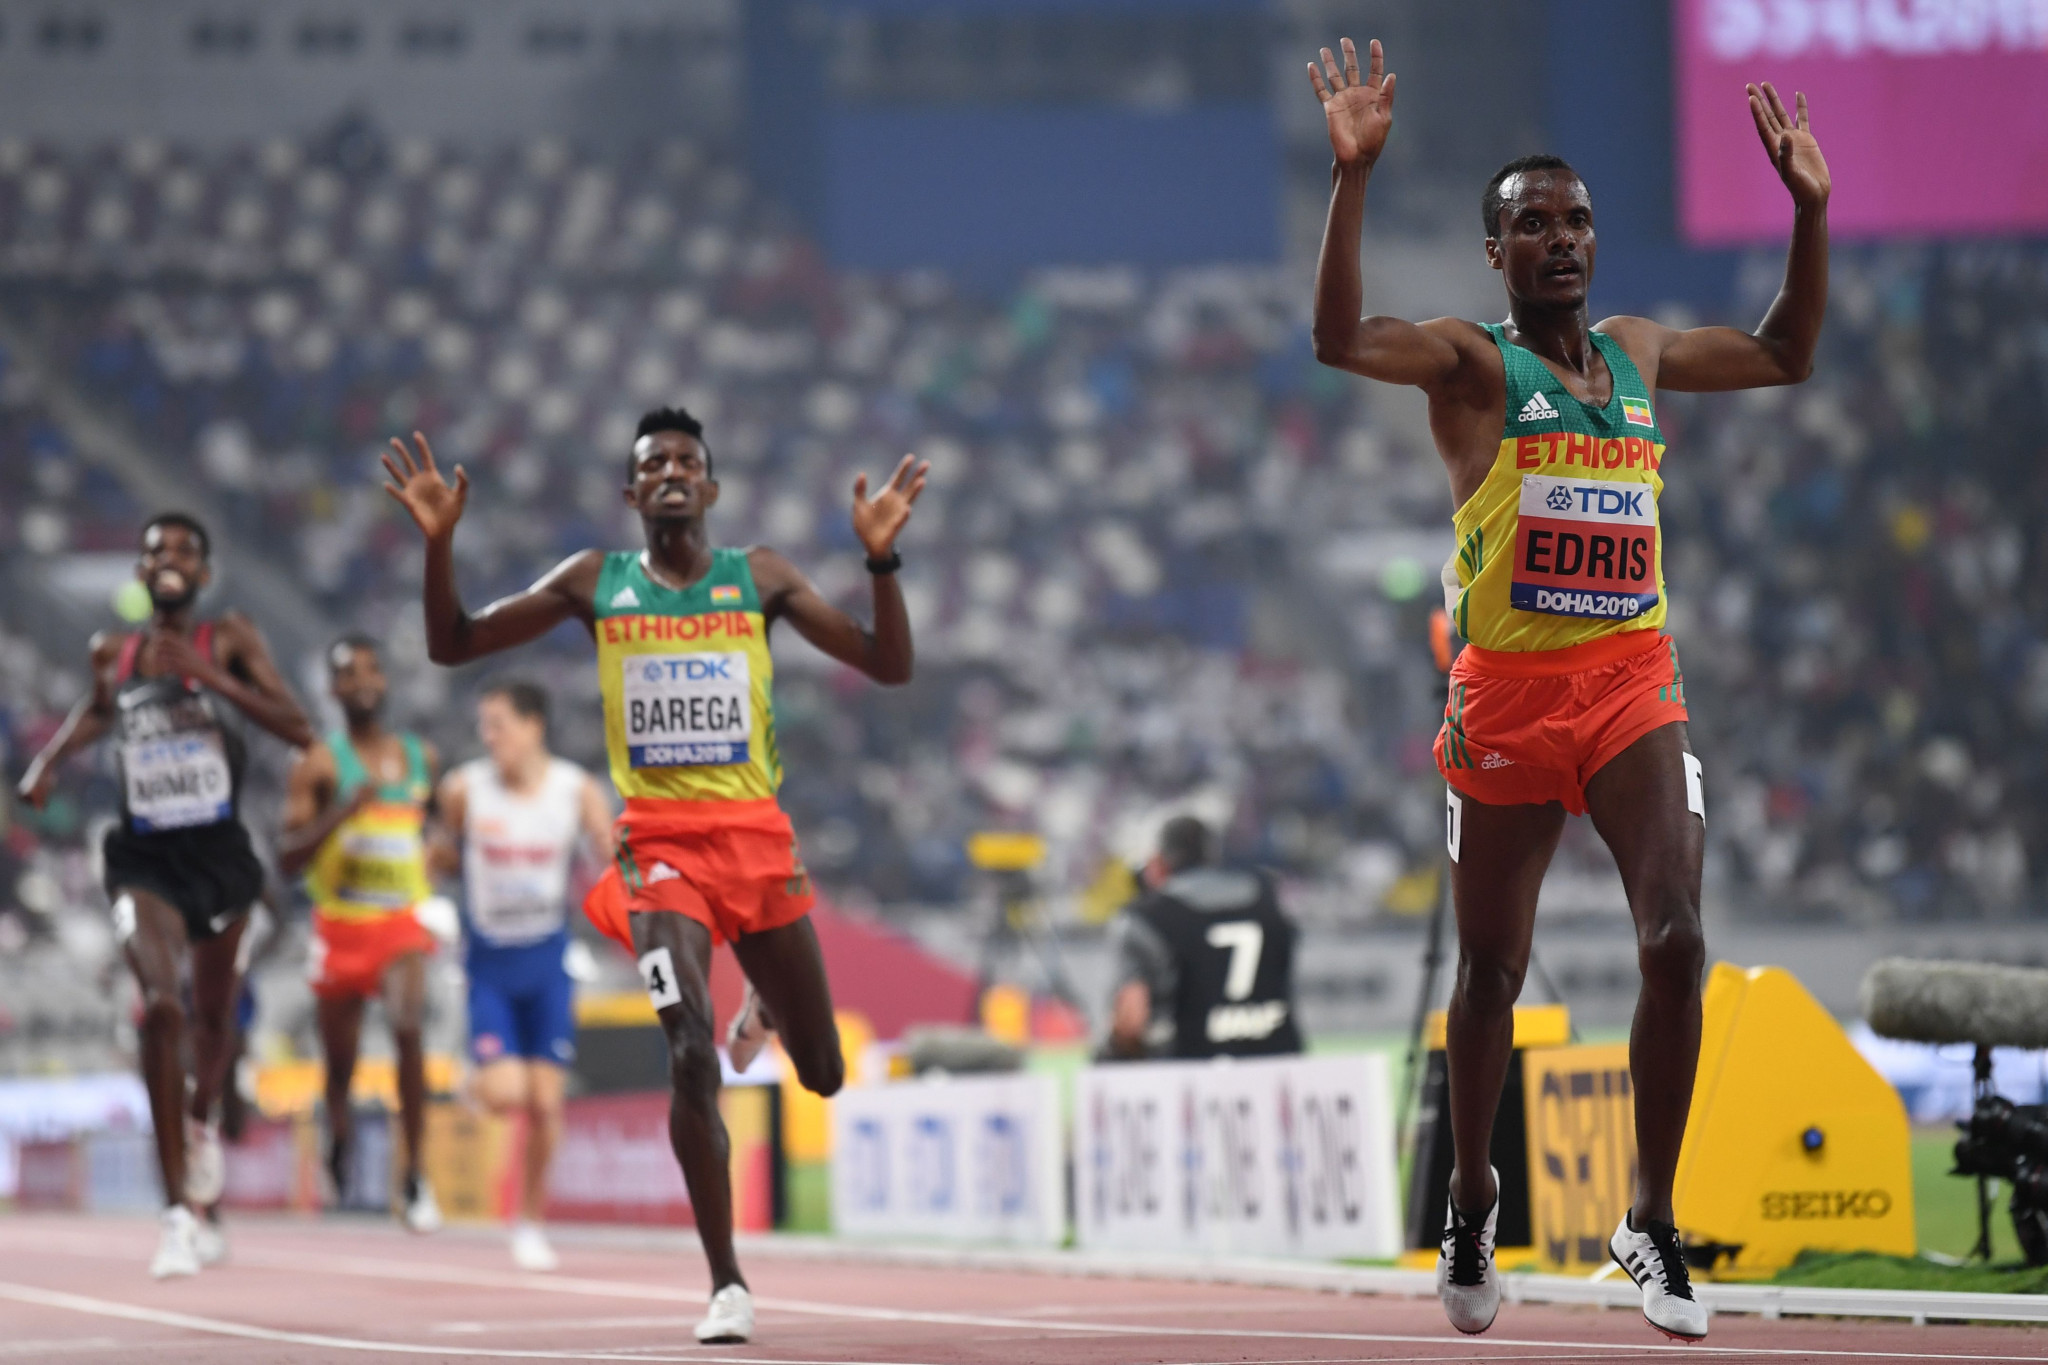 Ethiopia's Muktar Edris retains his world 5,000m title after an epic contest in Doha ©Getty Images